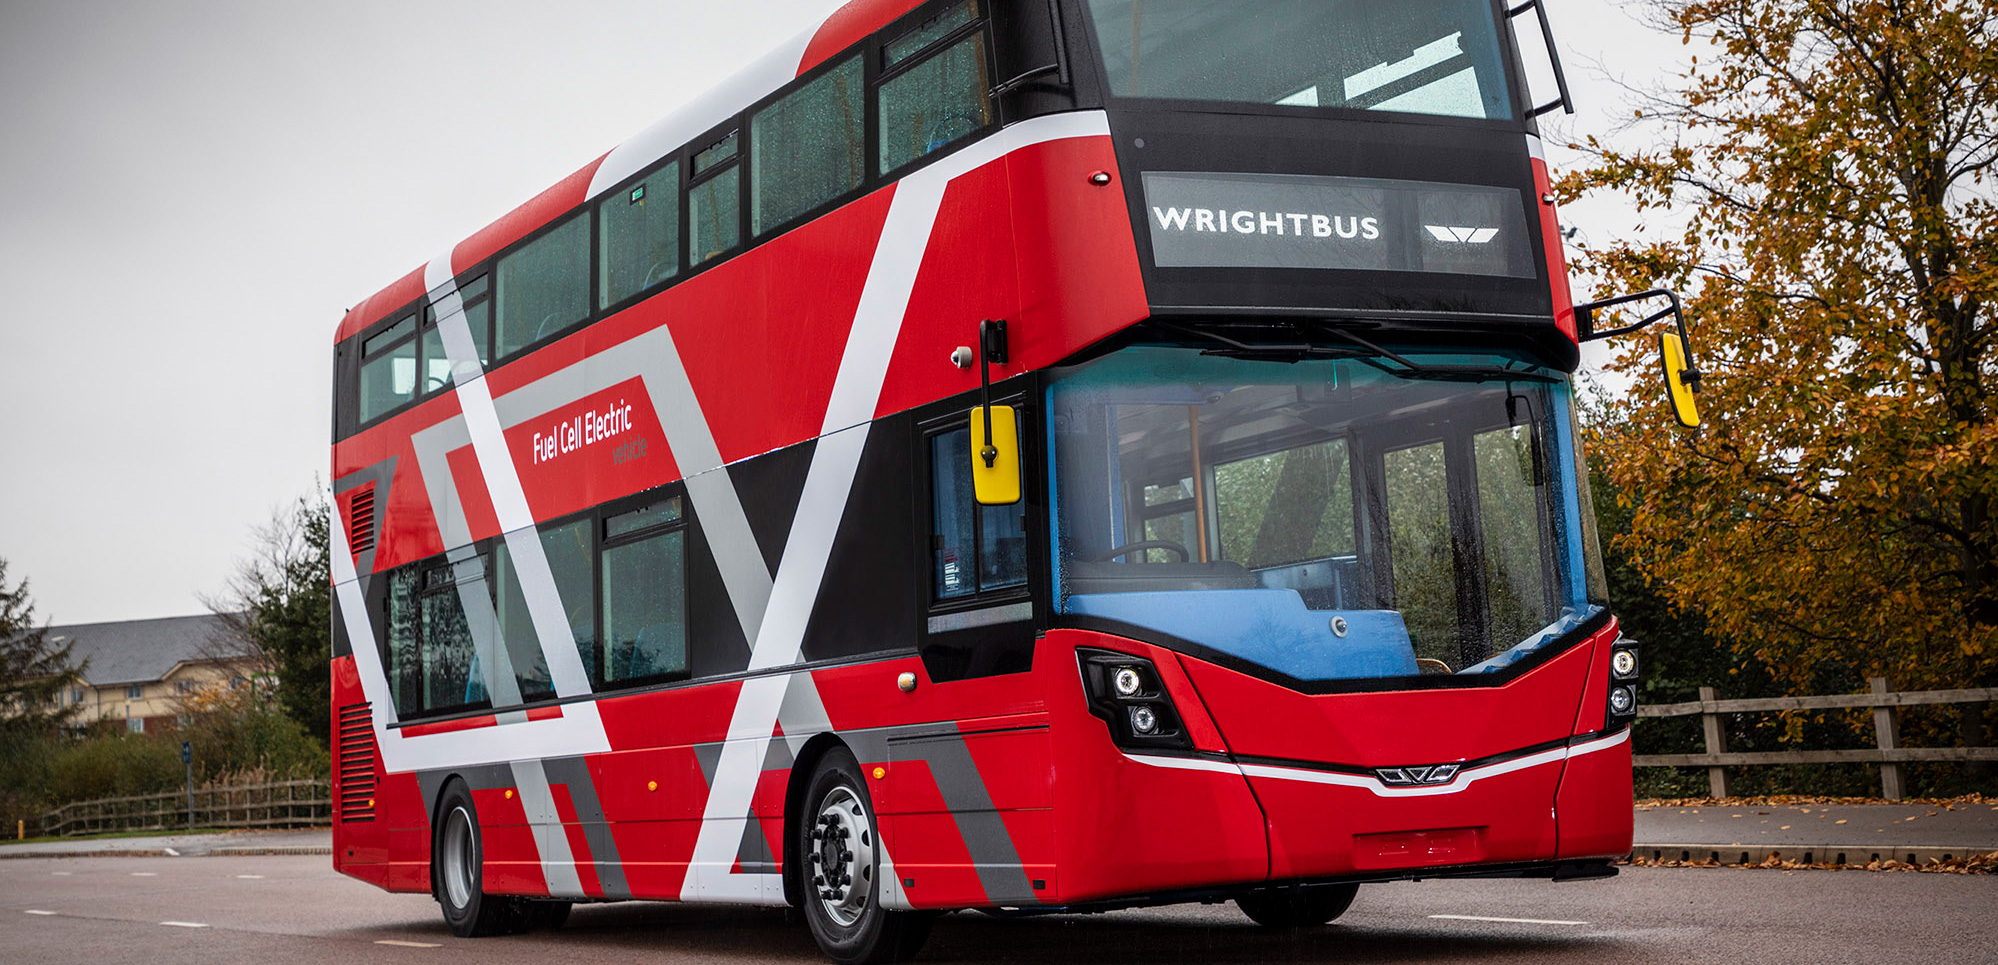 Wrightbus debuts world's first fuel-cell double-deck bus - Electric